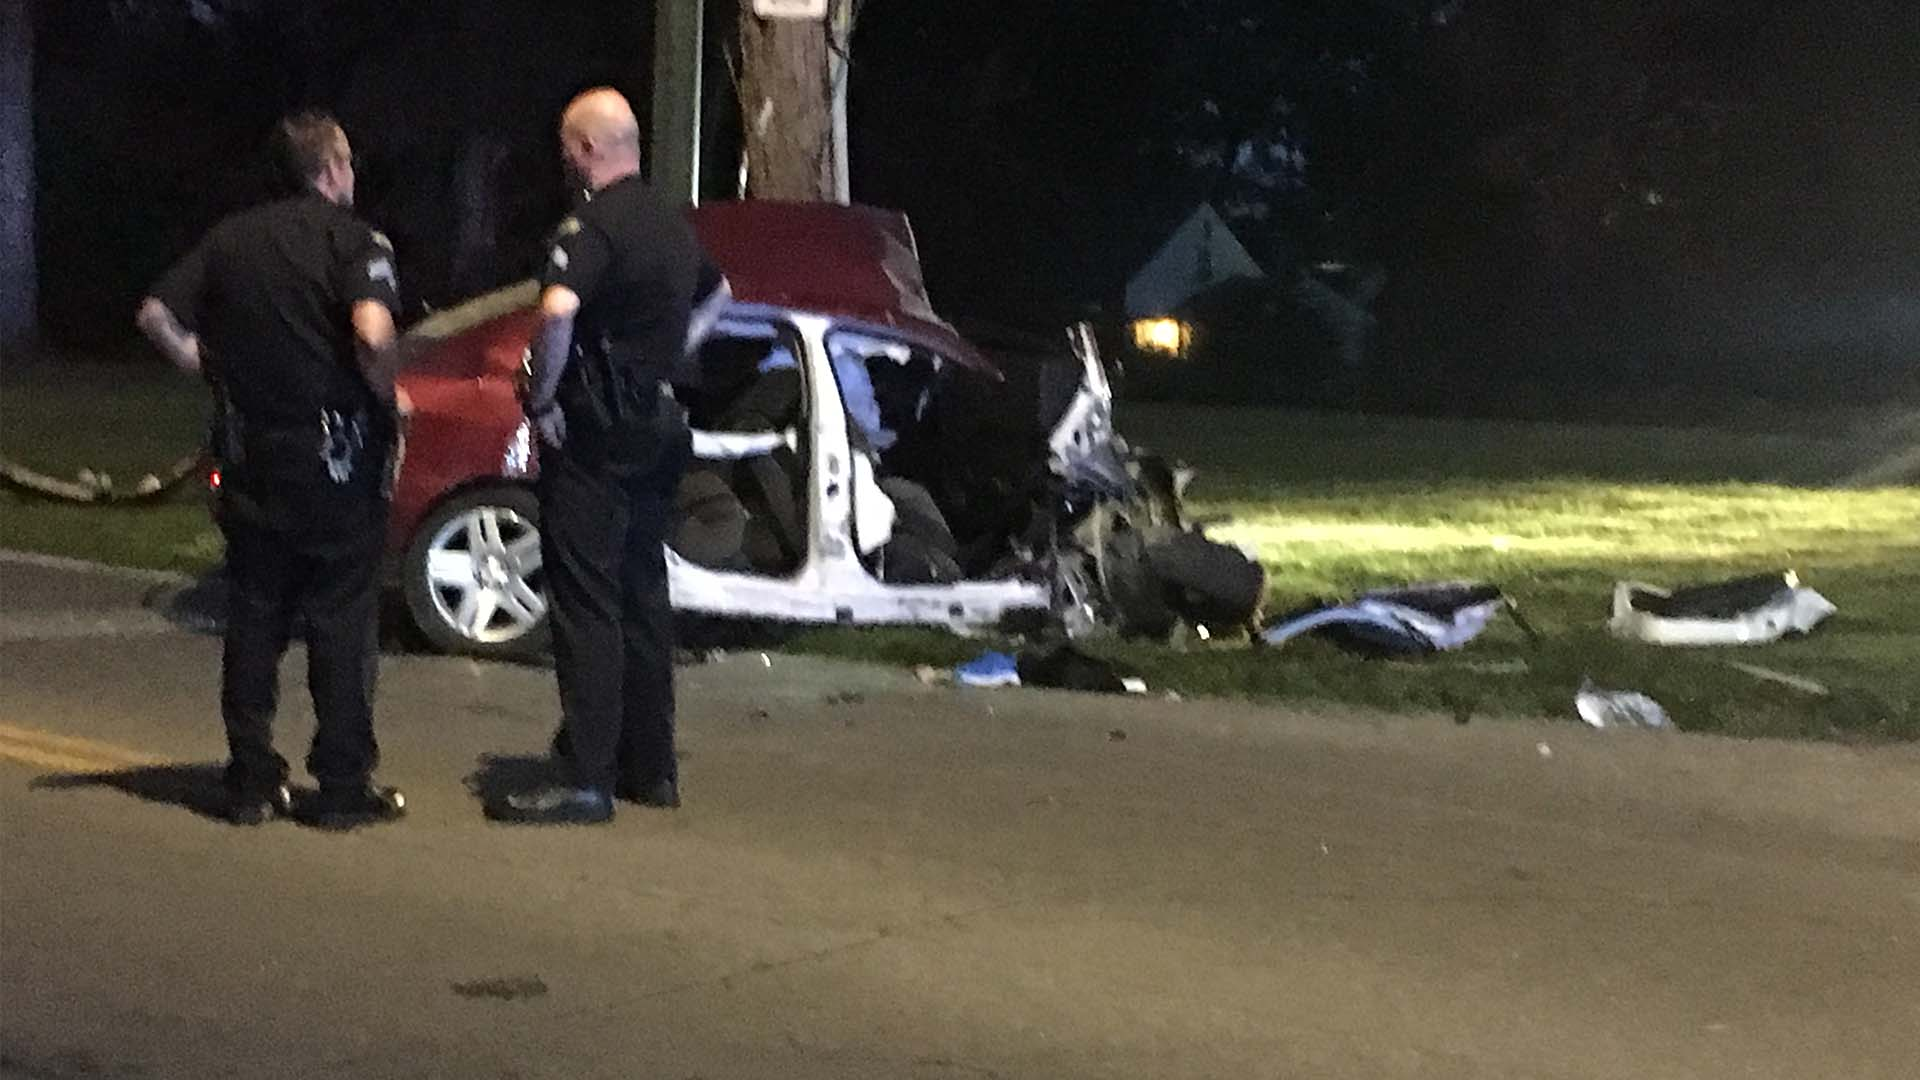 Weapons complaint at Burger King leads to car into pole in